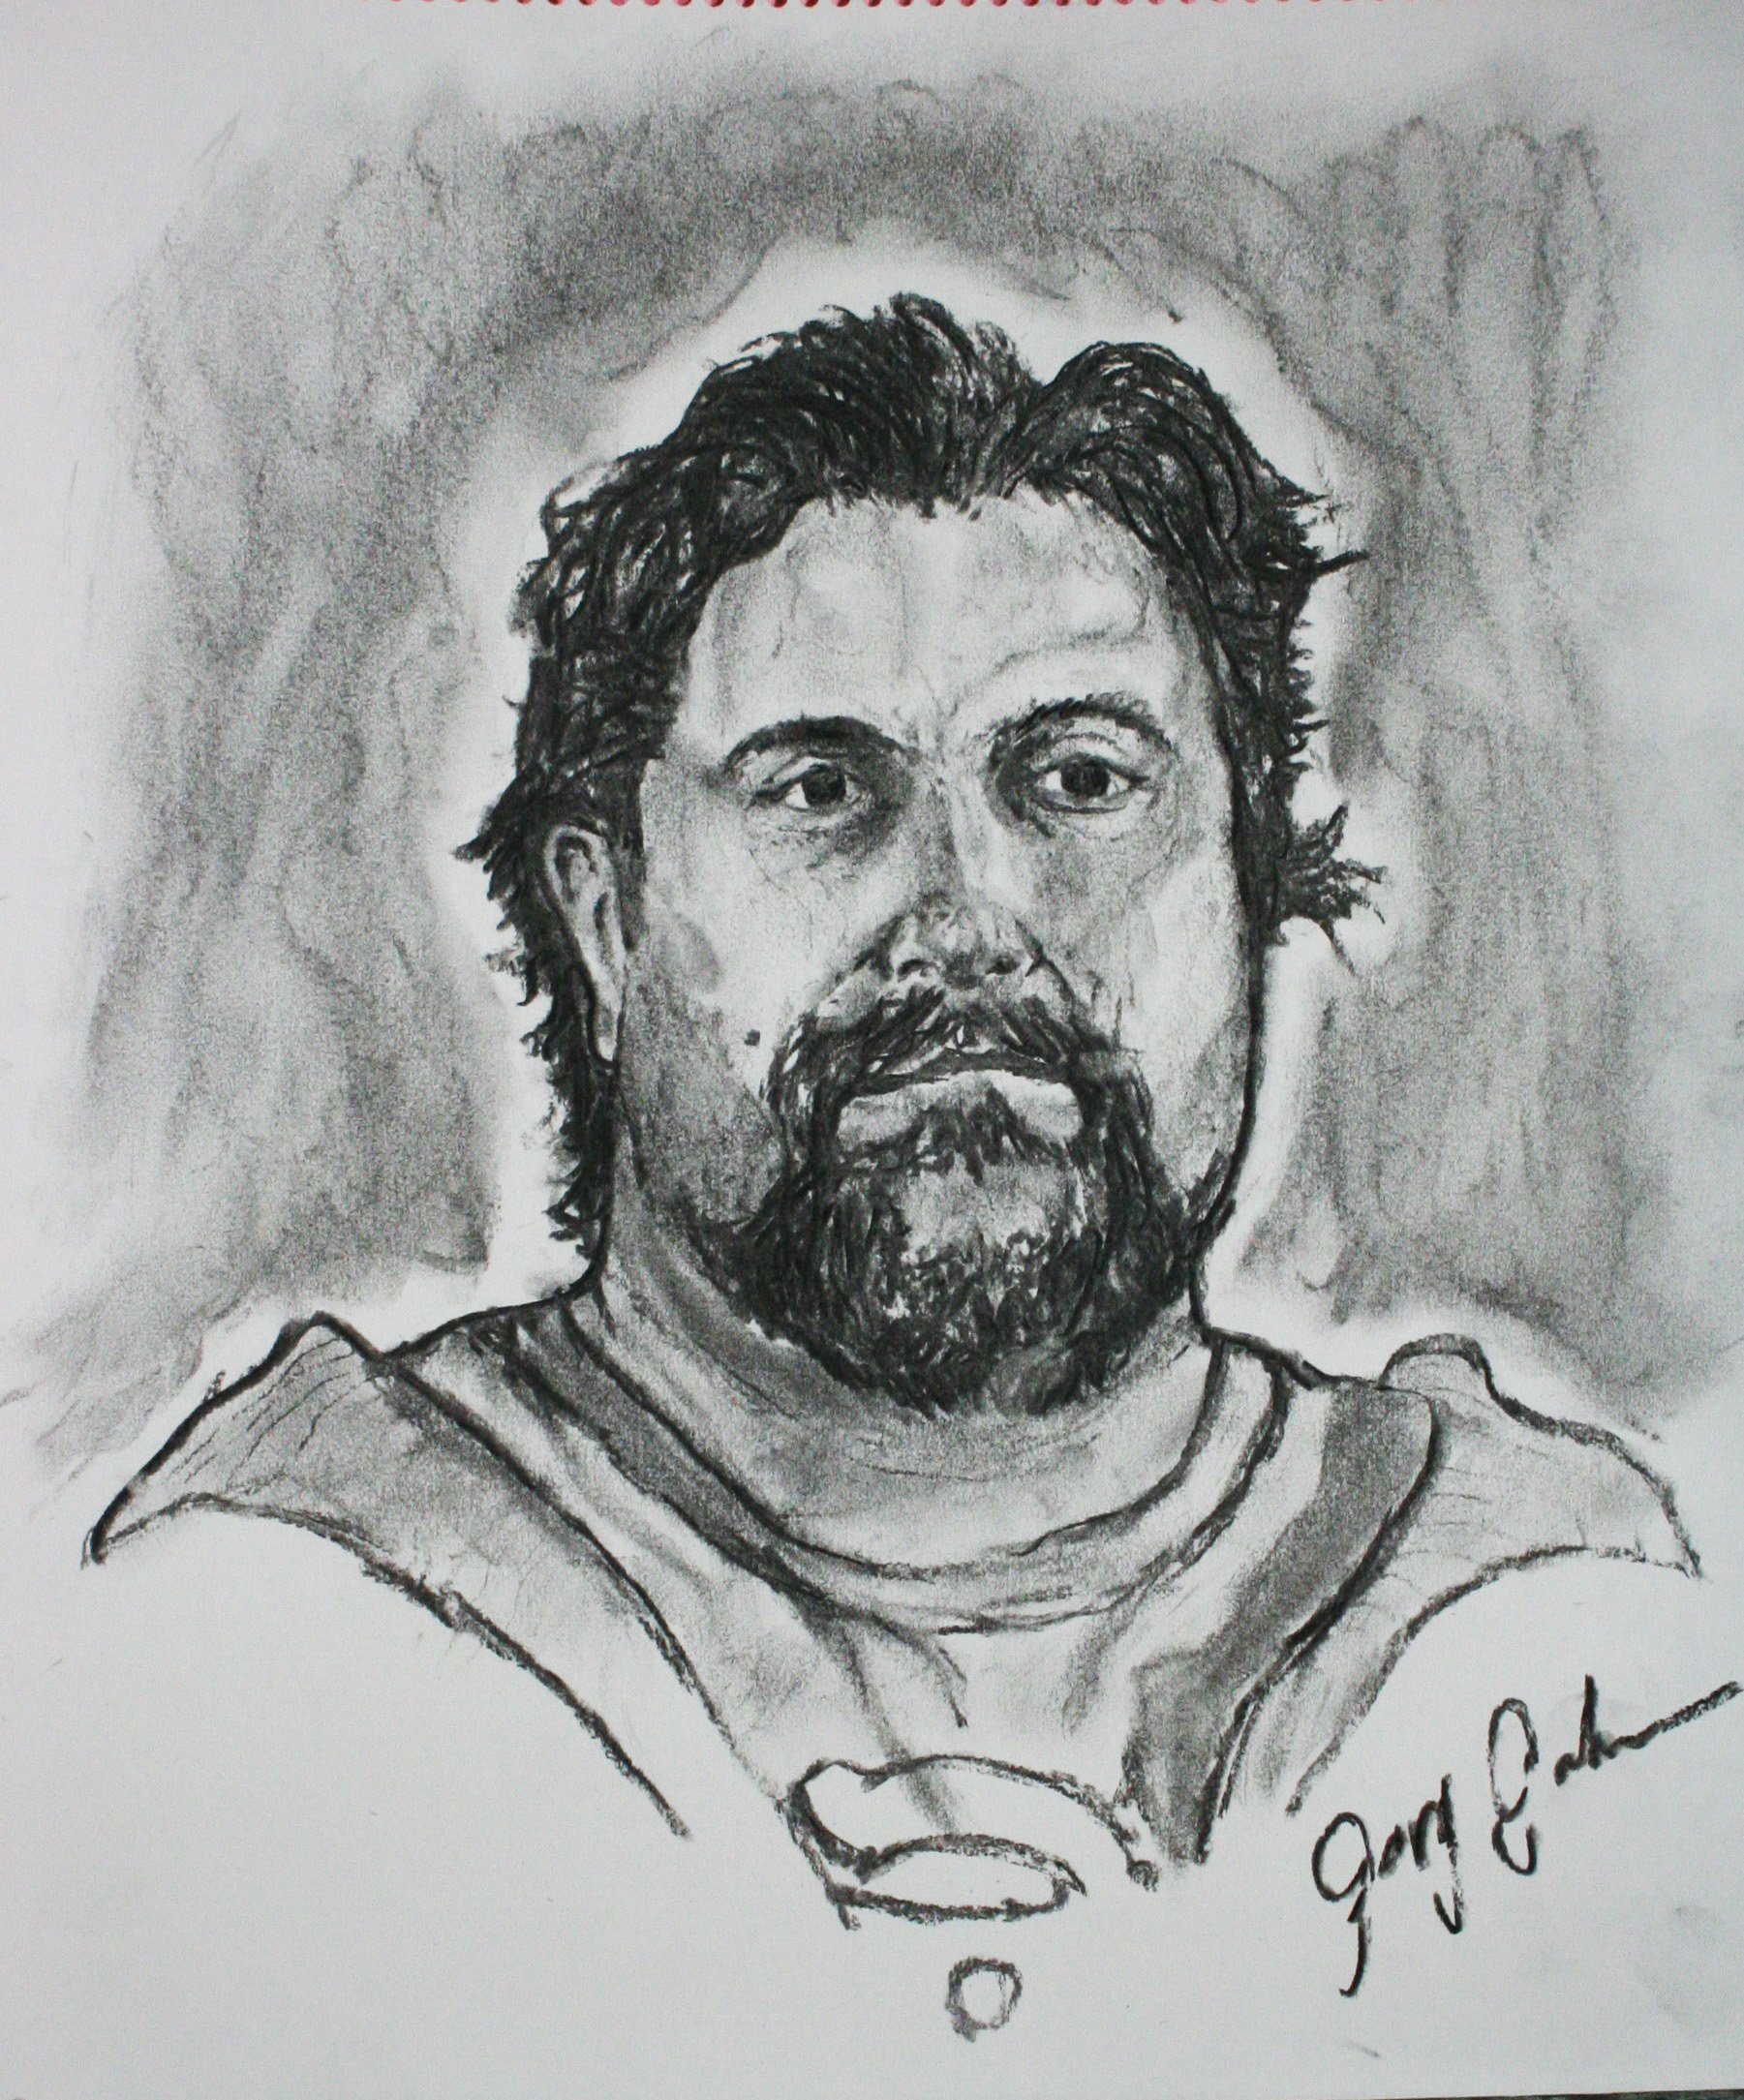 Gary Galehouse did this 3-hour drawing.